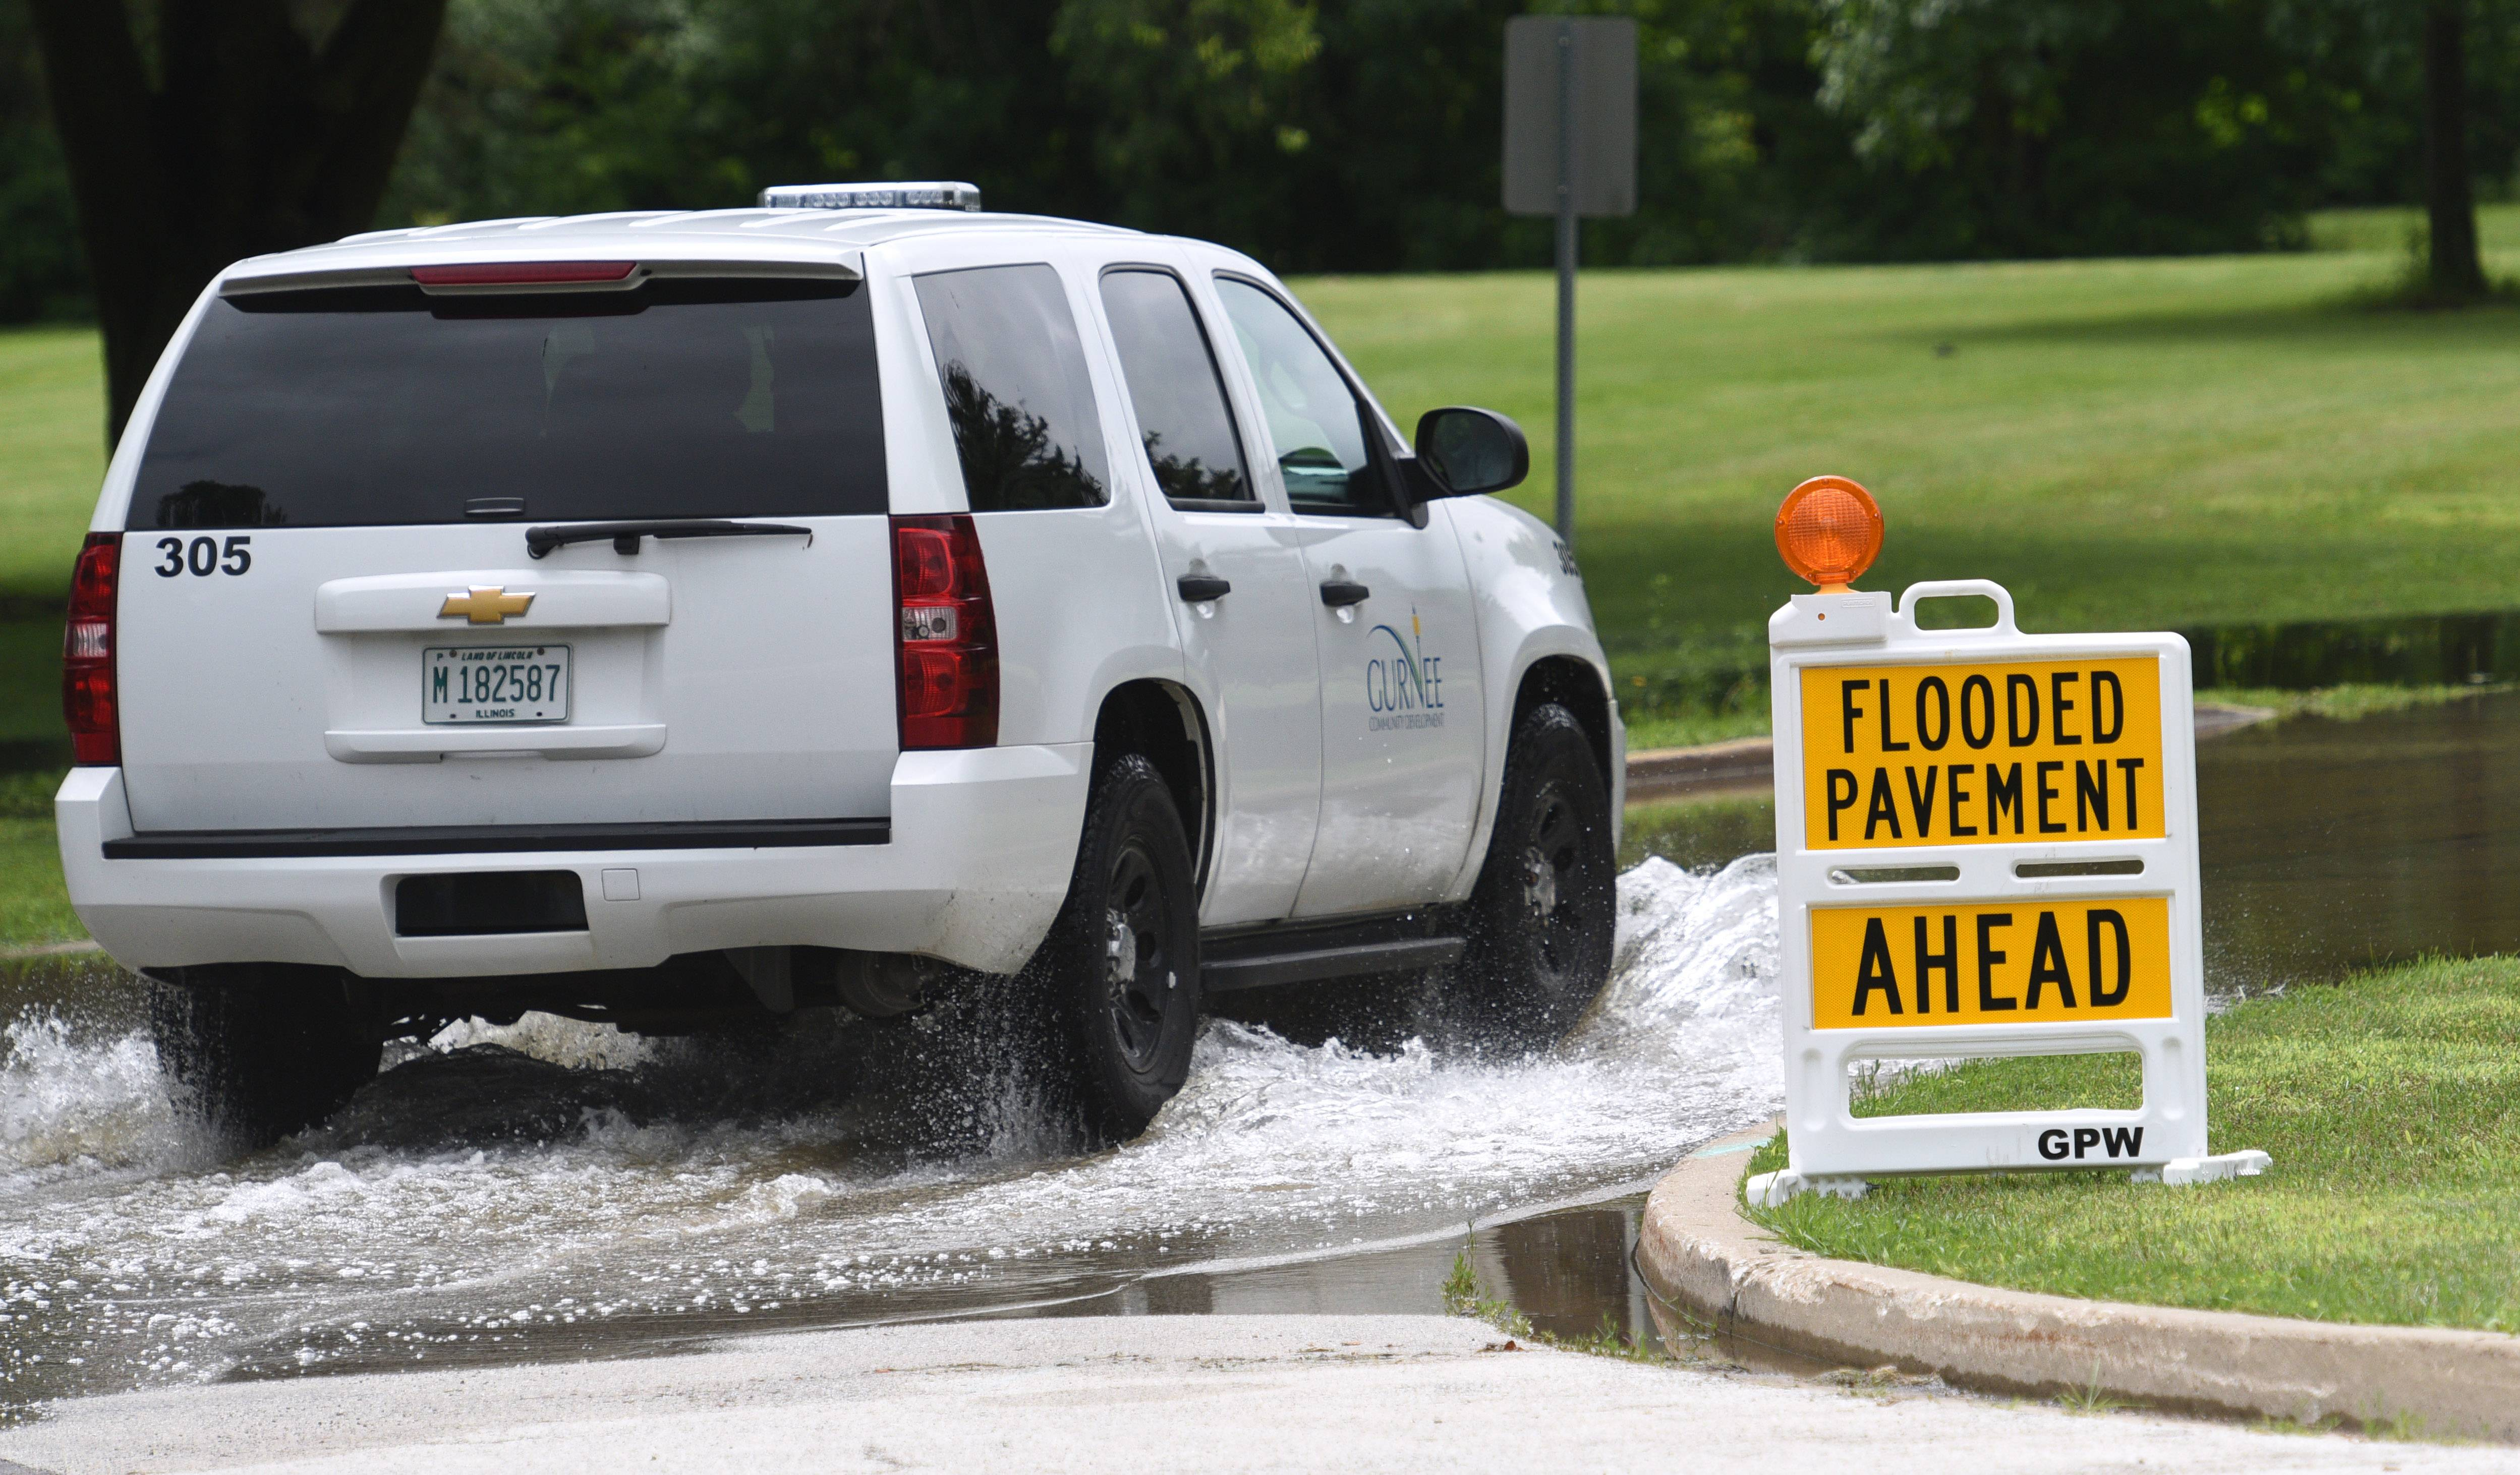 Emerald Avenue is passable as rising Des Plaines River waters cover the road at Kilbourne Road Wednesday morning in Gurnee.